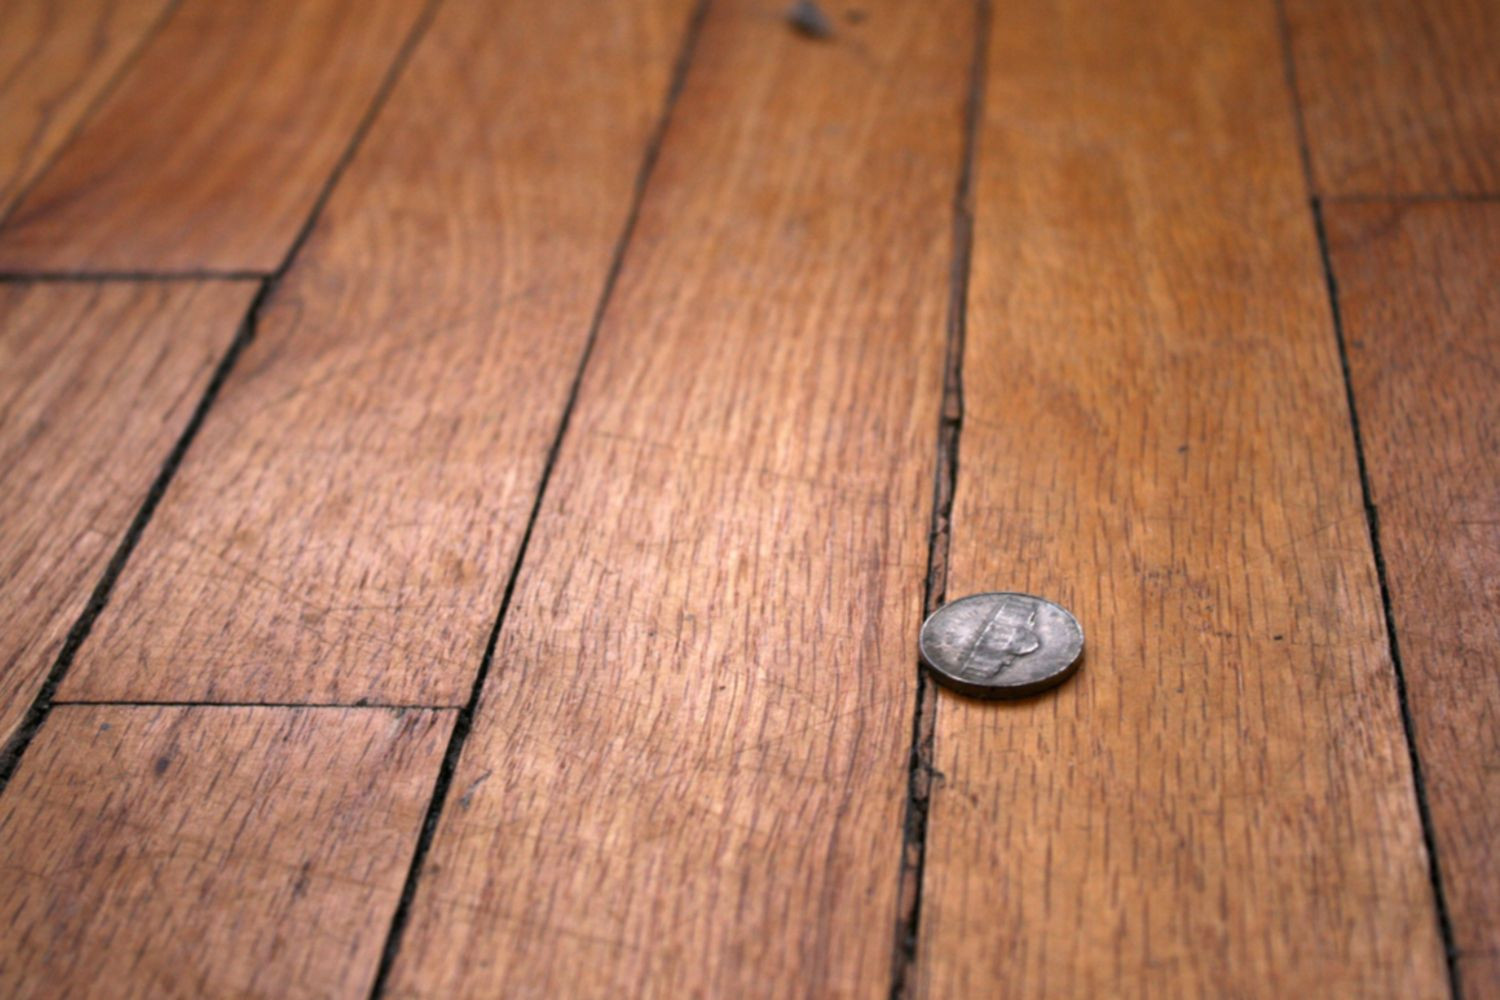 prefinished hardwood floor gap filler of how to repair gaps between floorboards in wood floor with gaps between boards 1500 x 1000 56a49eb25f9b58b7d0d7df8d